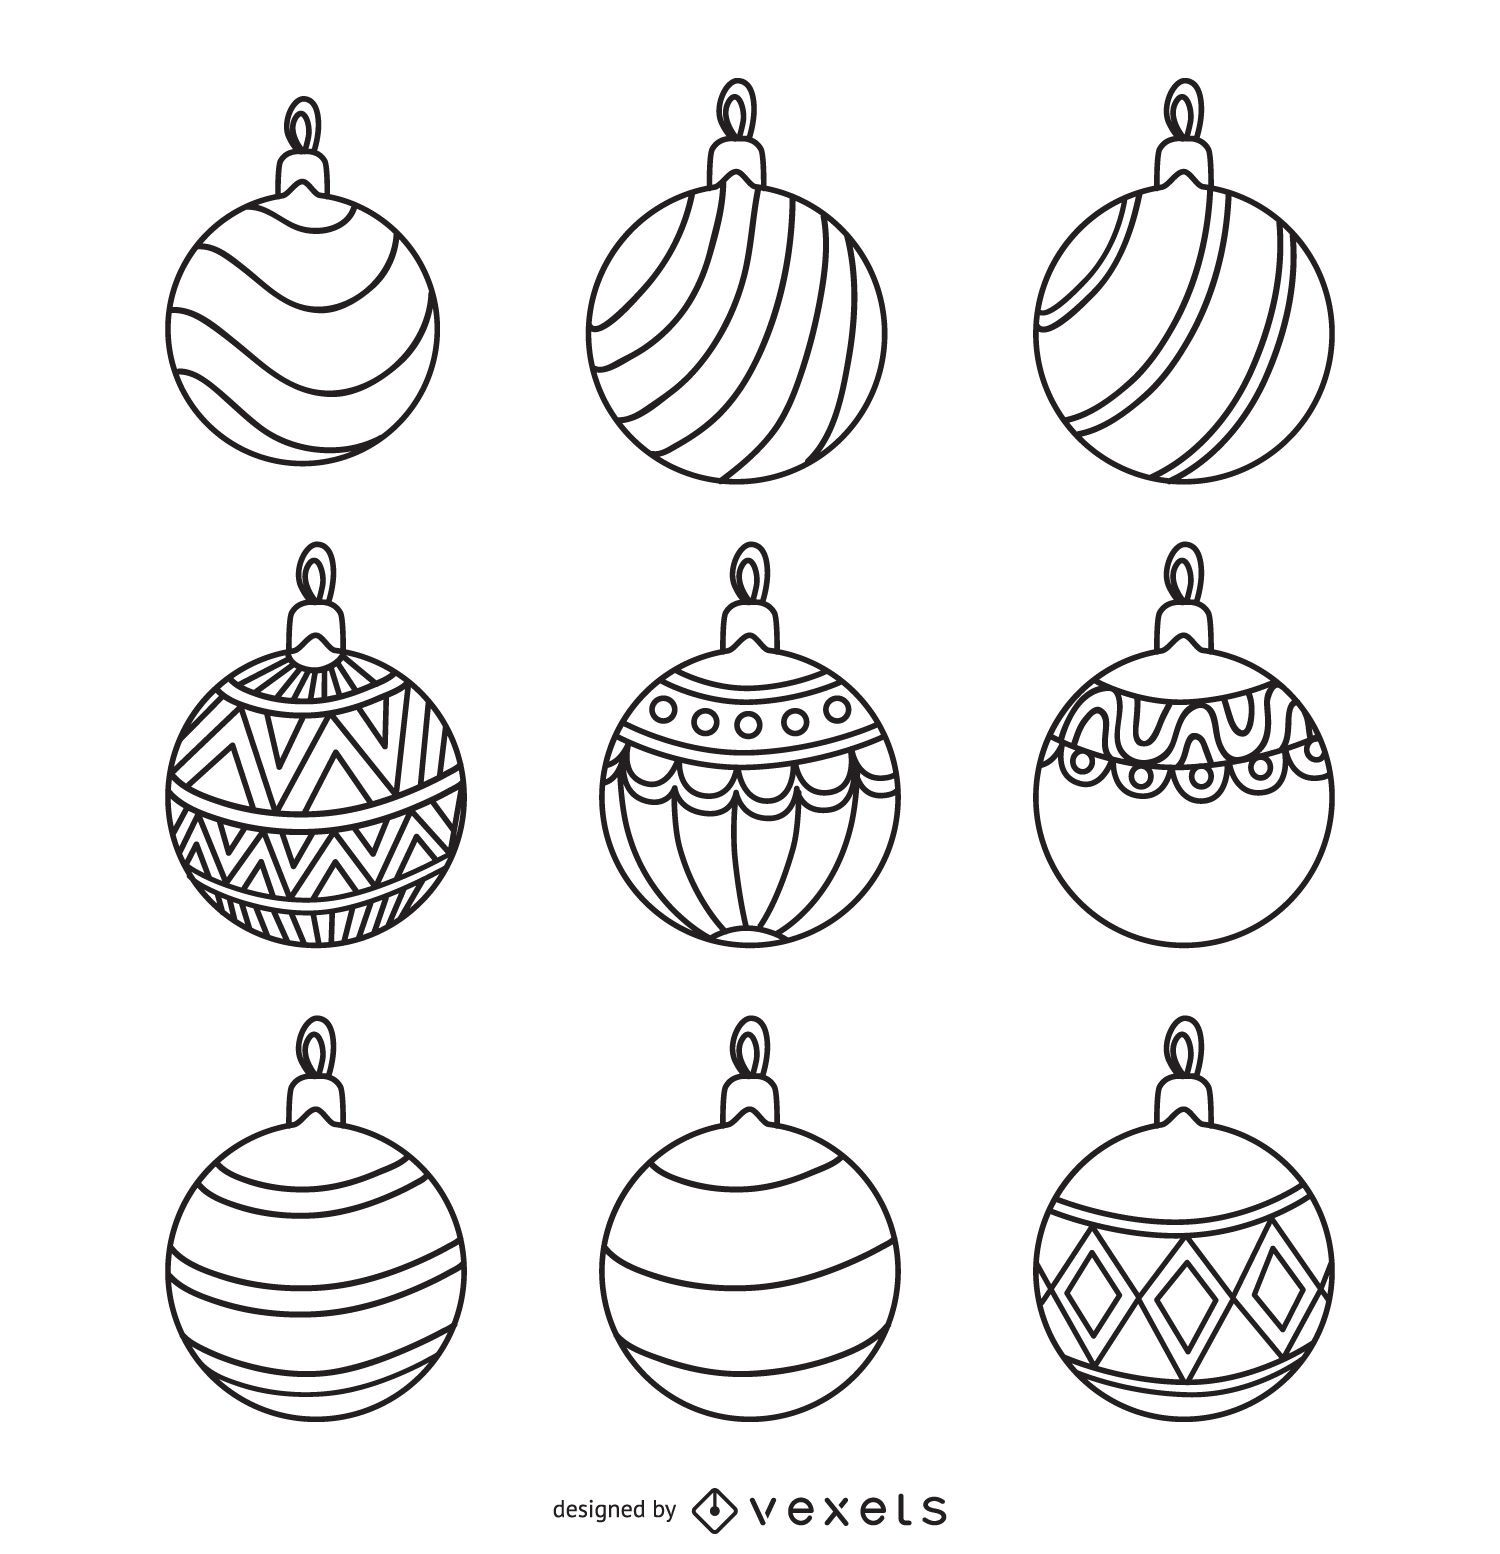 Large round christmas ornaments - Christmas Round Ornament Outlines Set Download Large Image 1601x1658px